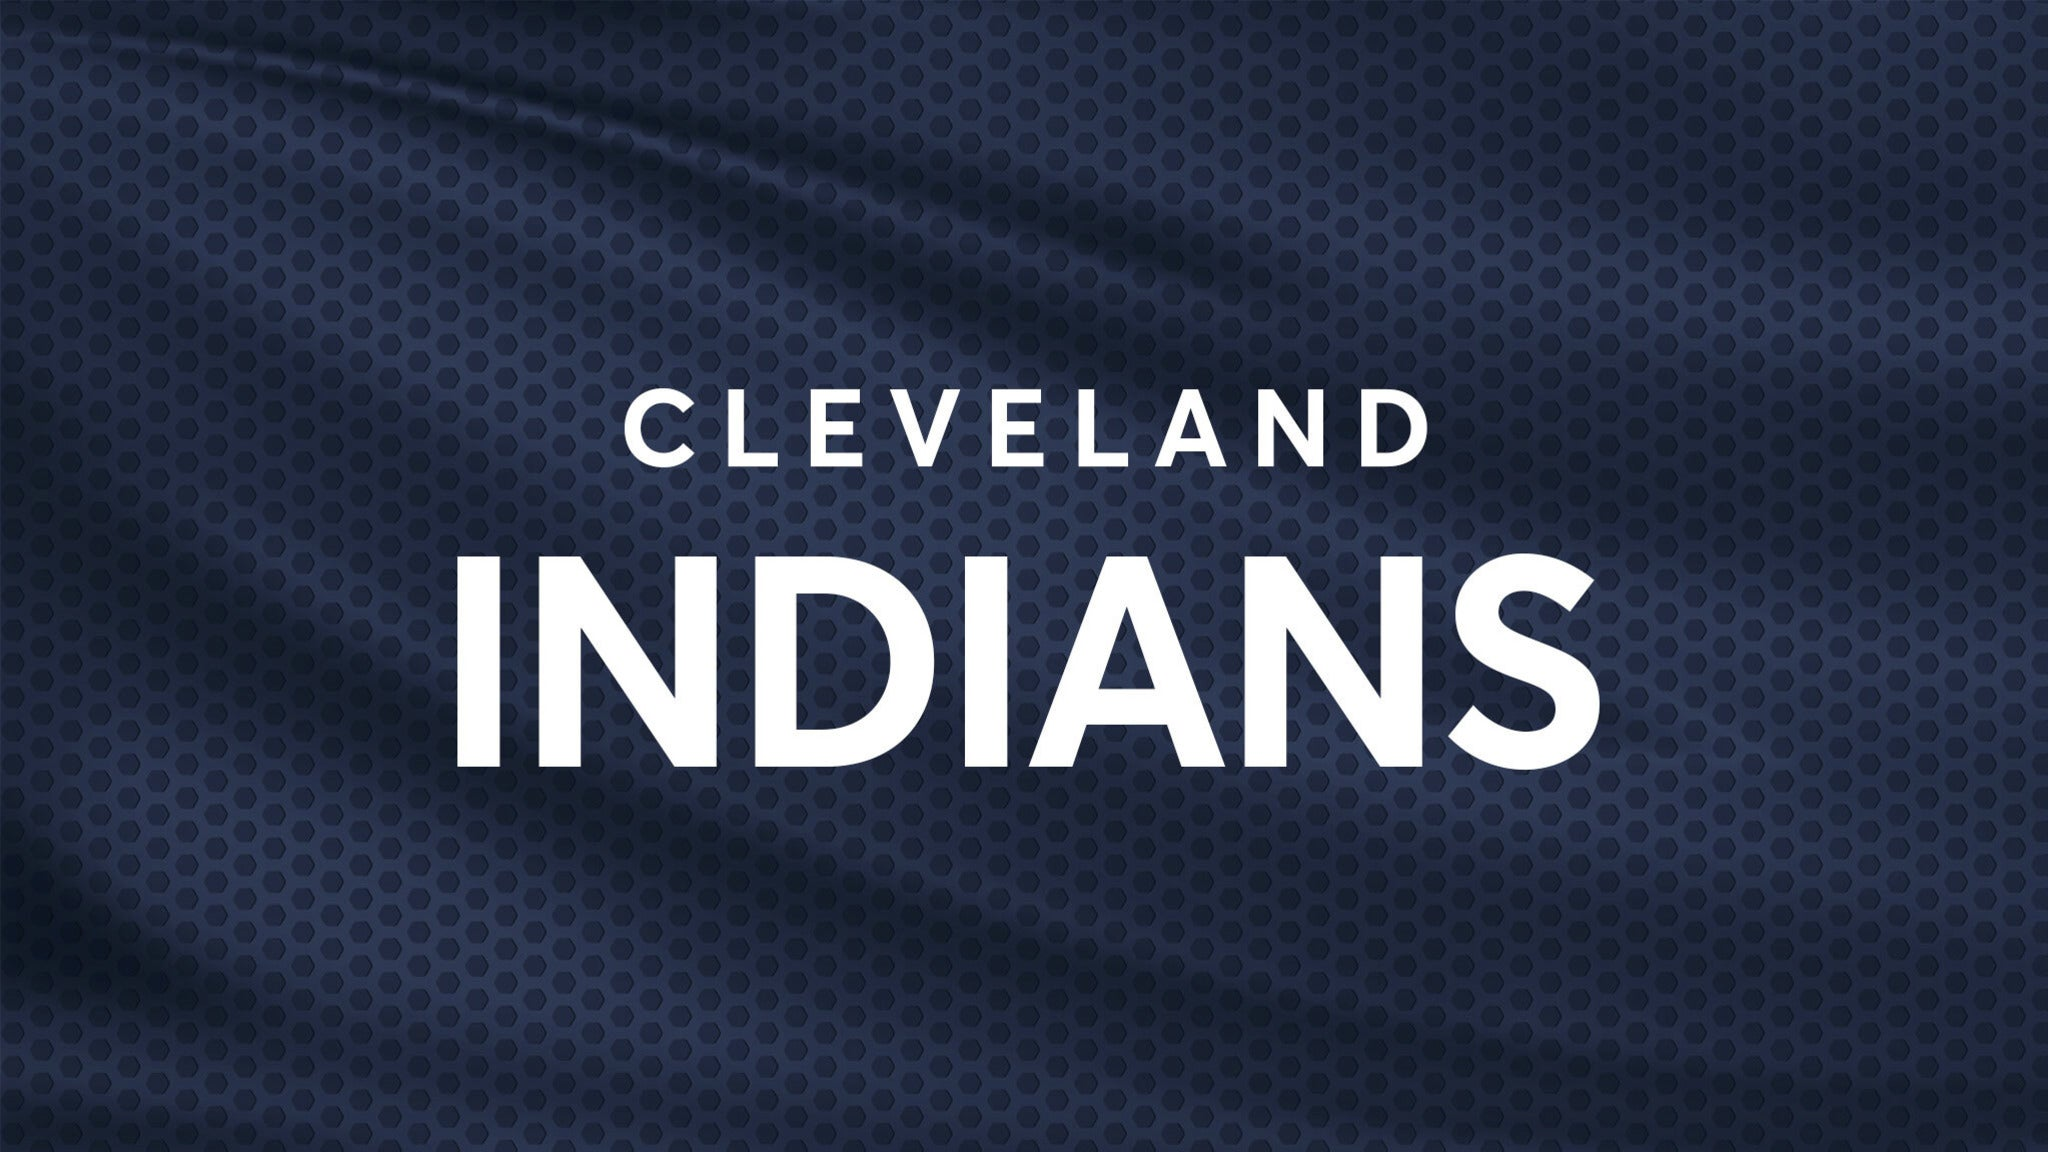 Melton Signs with Indians for $96,500,000